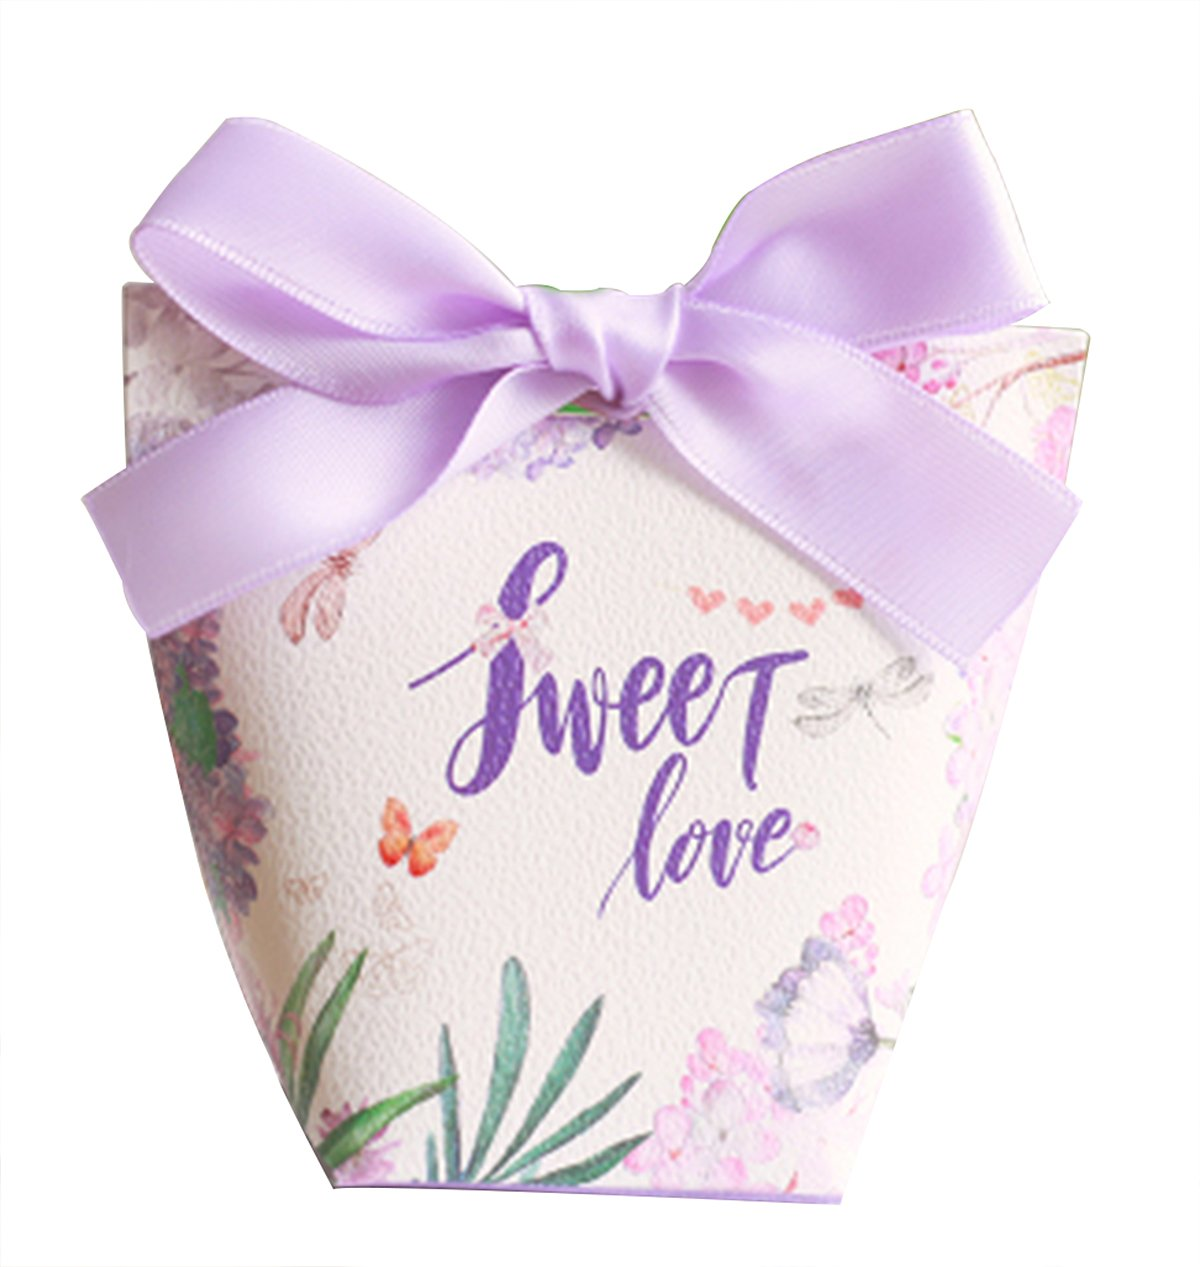 autulet Cute Purple Baby Boy Shower Favors Candy Wrappers Romantic Wedding Favor Candy Box With Ribbon 50 Pieces (Candies or chocolates not included)